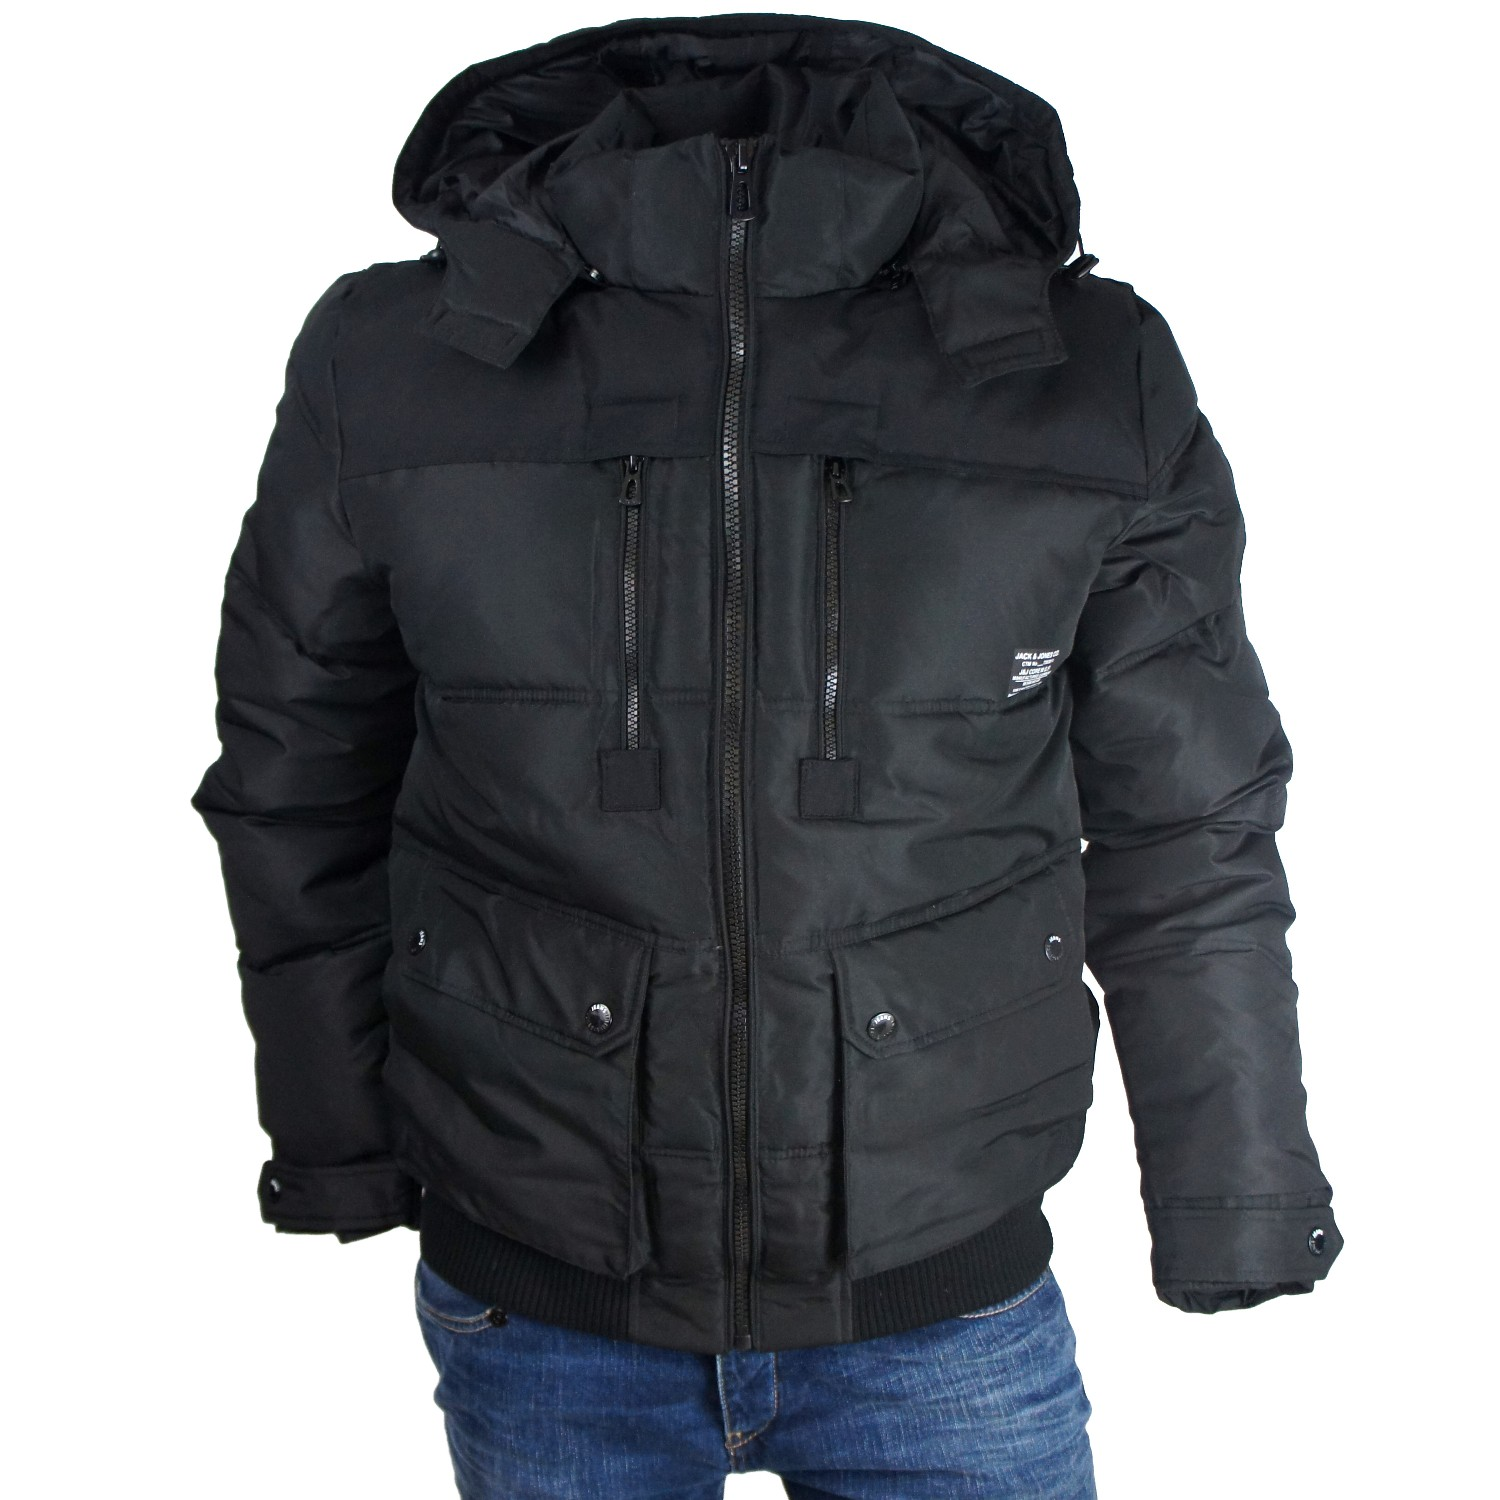 jack jones jacke mantel jacket winter rider jkt s xxl ebay. Black Bedroom Furniture Sets. Home Design Ideas